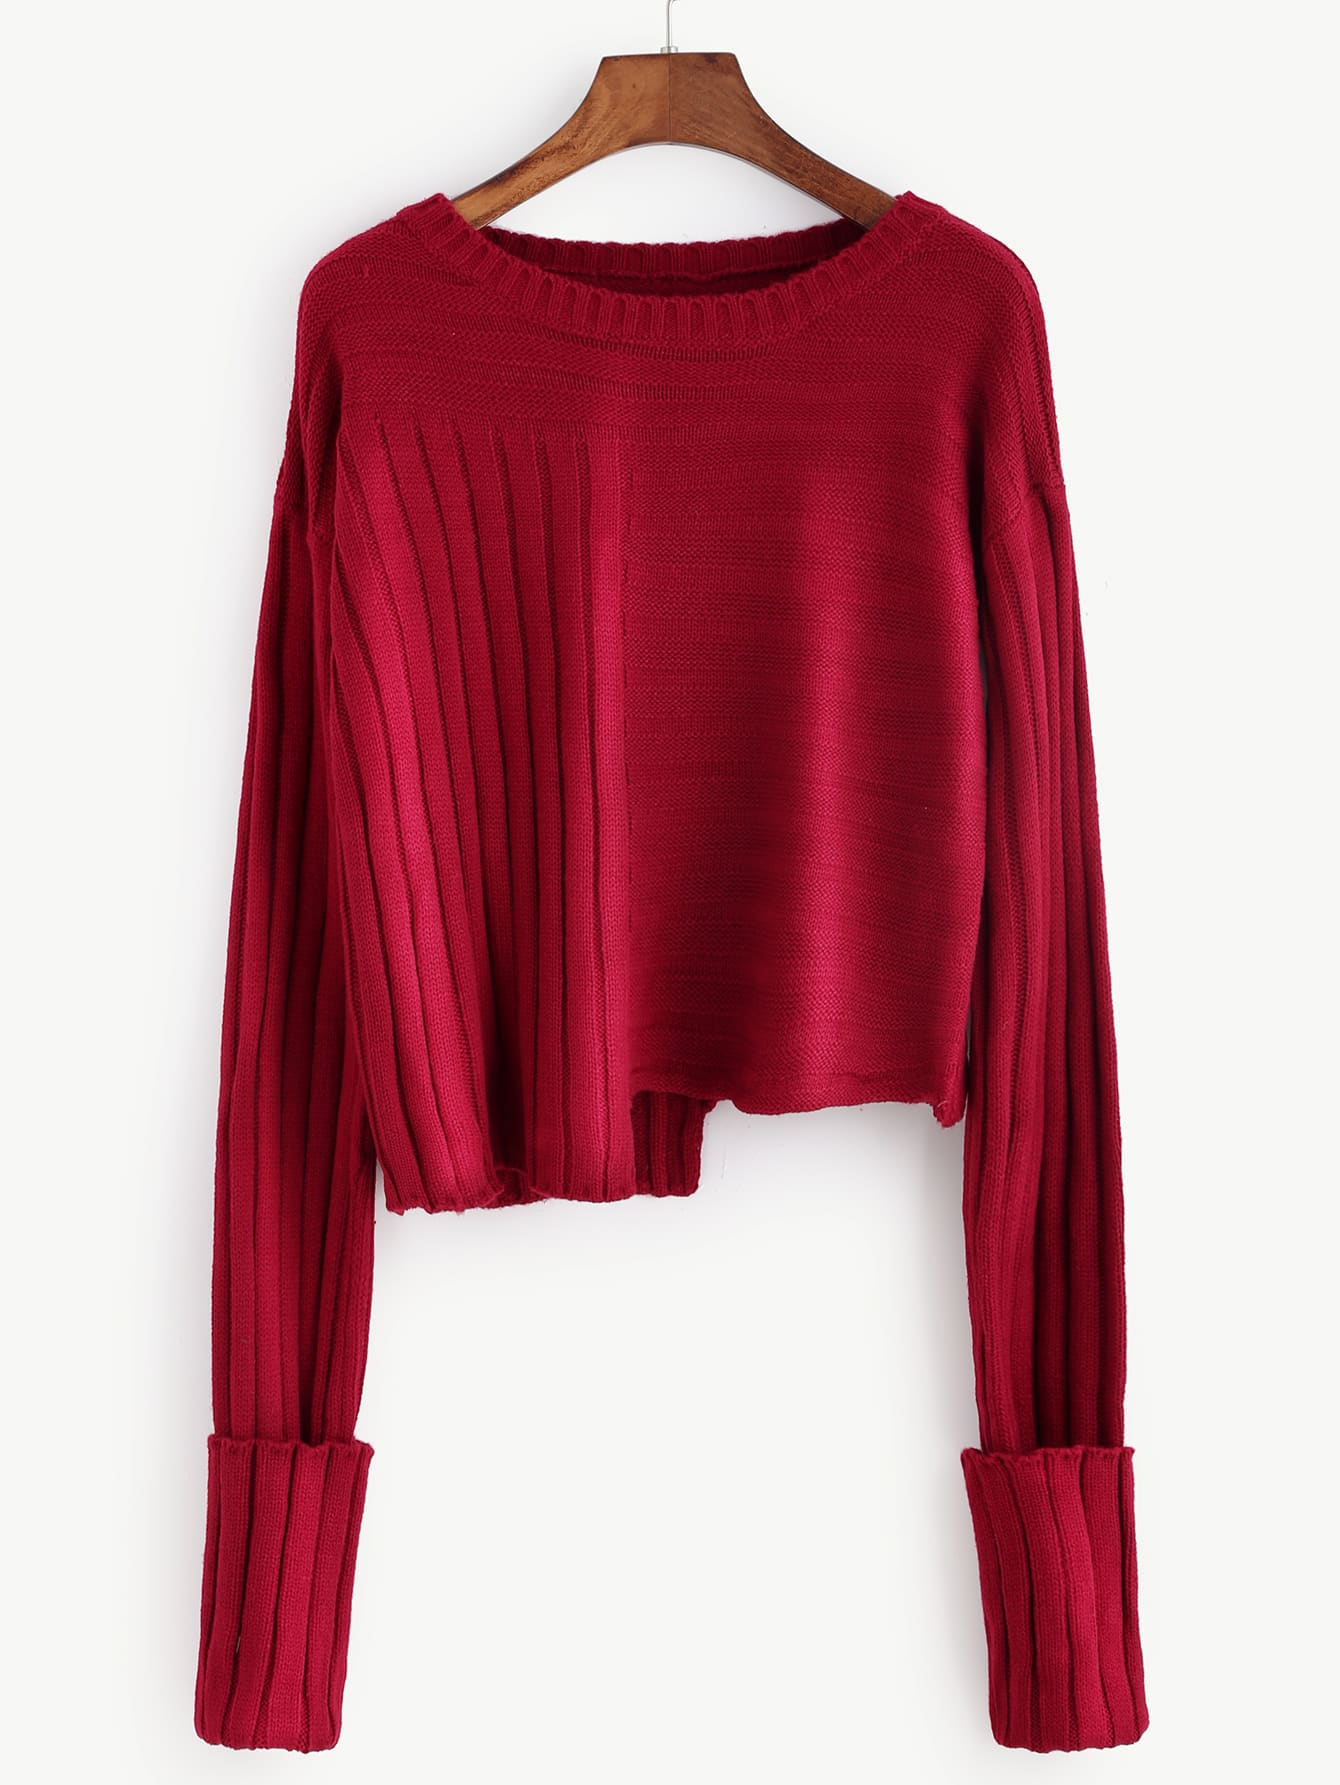 Burgundy Mixed Ribbed Knit Asymmetric Sweater sweater160923452